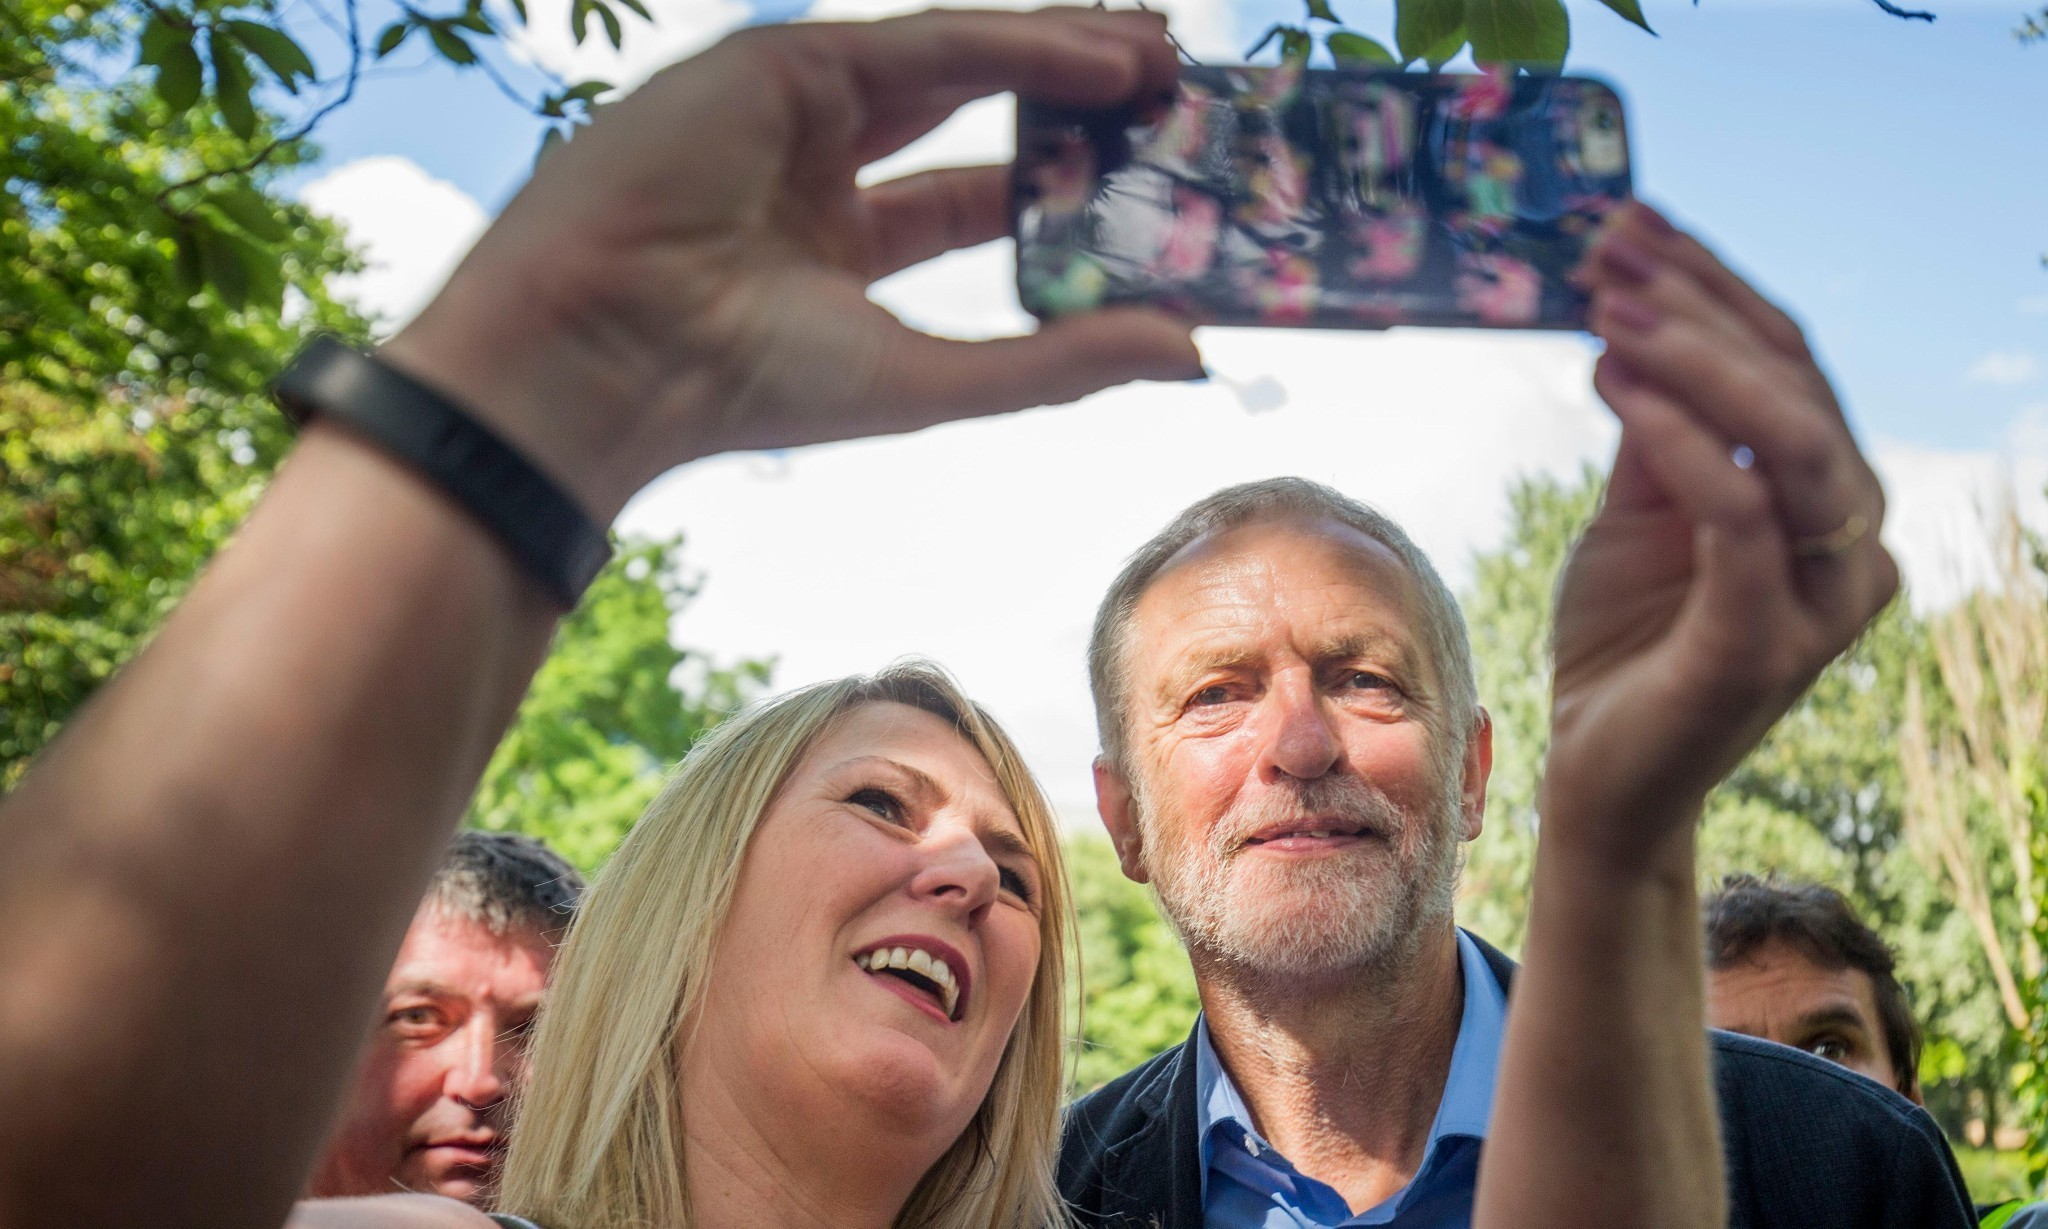 Jeremy Corbyn's Labour opponents should accept that their failures created him